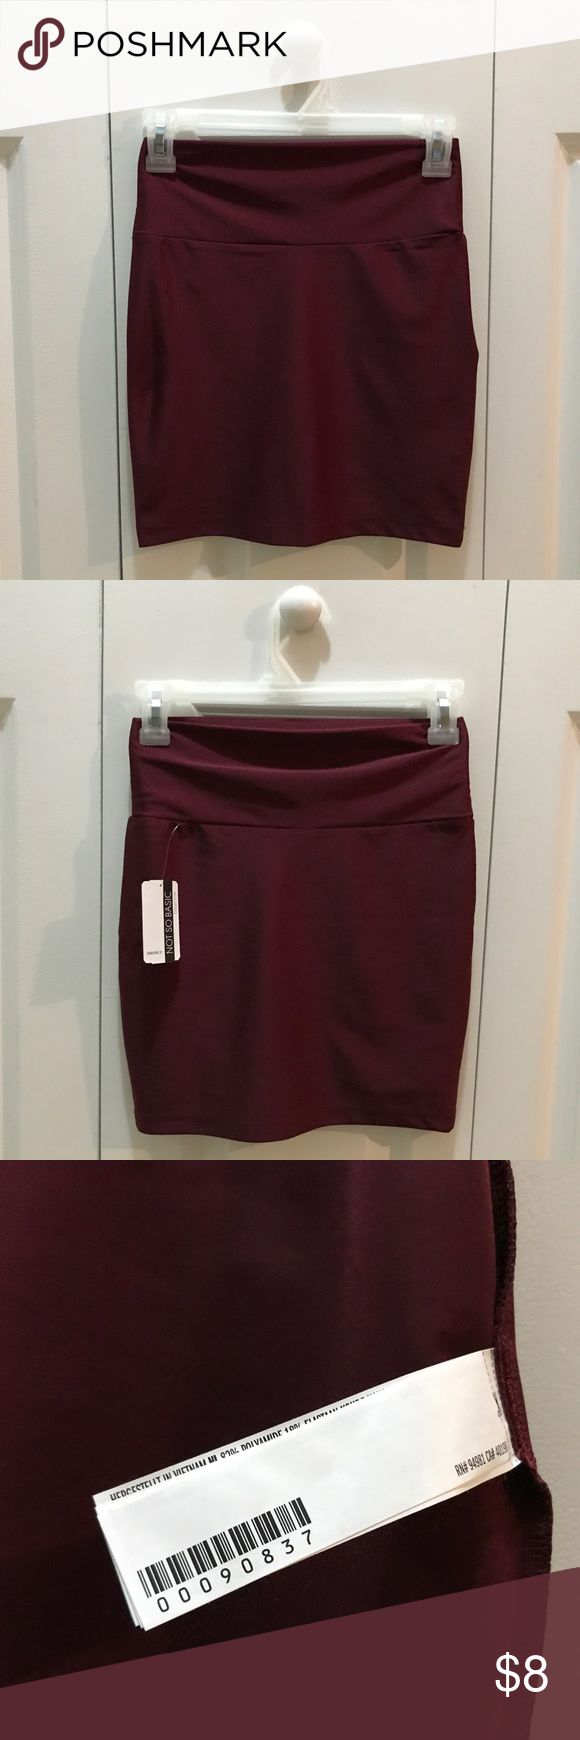 """NWT Forever 21 - Silk Burgundy Skirts! NWT Beautiful Forever 21 Silk Burgundy Skirts Size S! Materials Is 82% Nylon and 18% Spandex! 11"""" Waist! Front/Back Size From Waist To The Bottom Hem 15""""! Price Is Firm! Happy Poshing. Forever 21 Skirts Mini"""